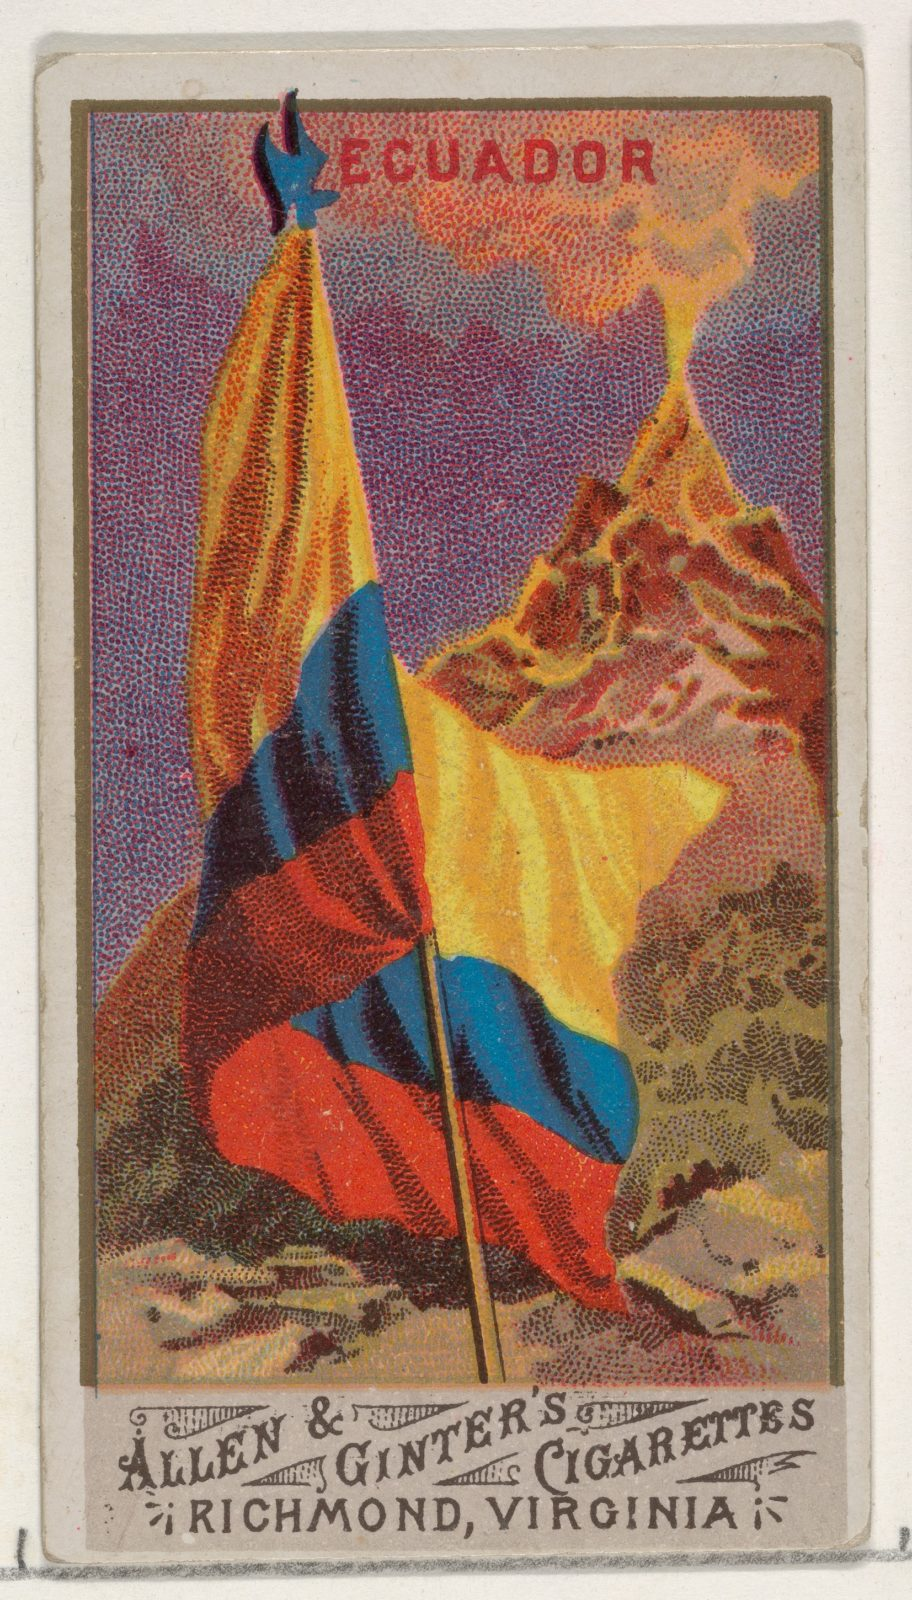 Ecuador, from Flags of All Nations, Series 1 (N9) for Allen & Ginter Cigarettes Brands